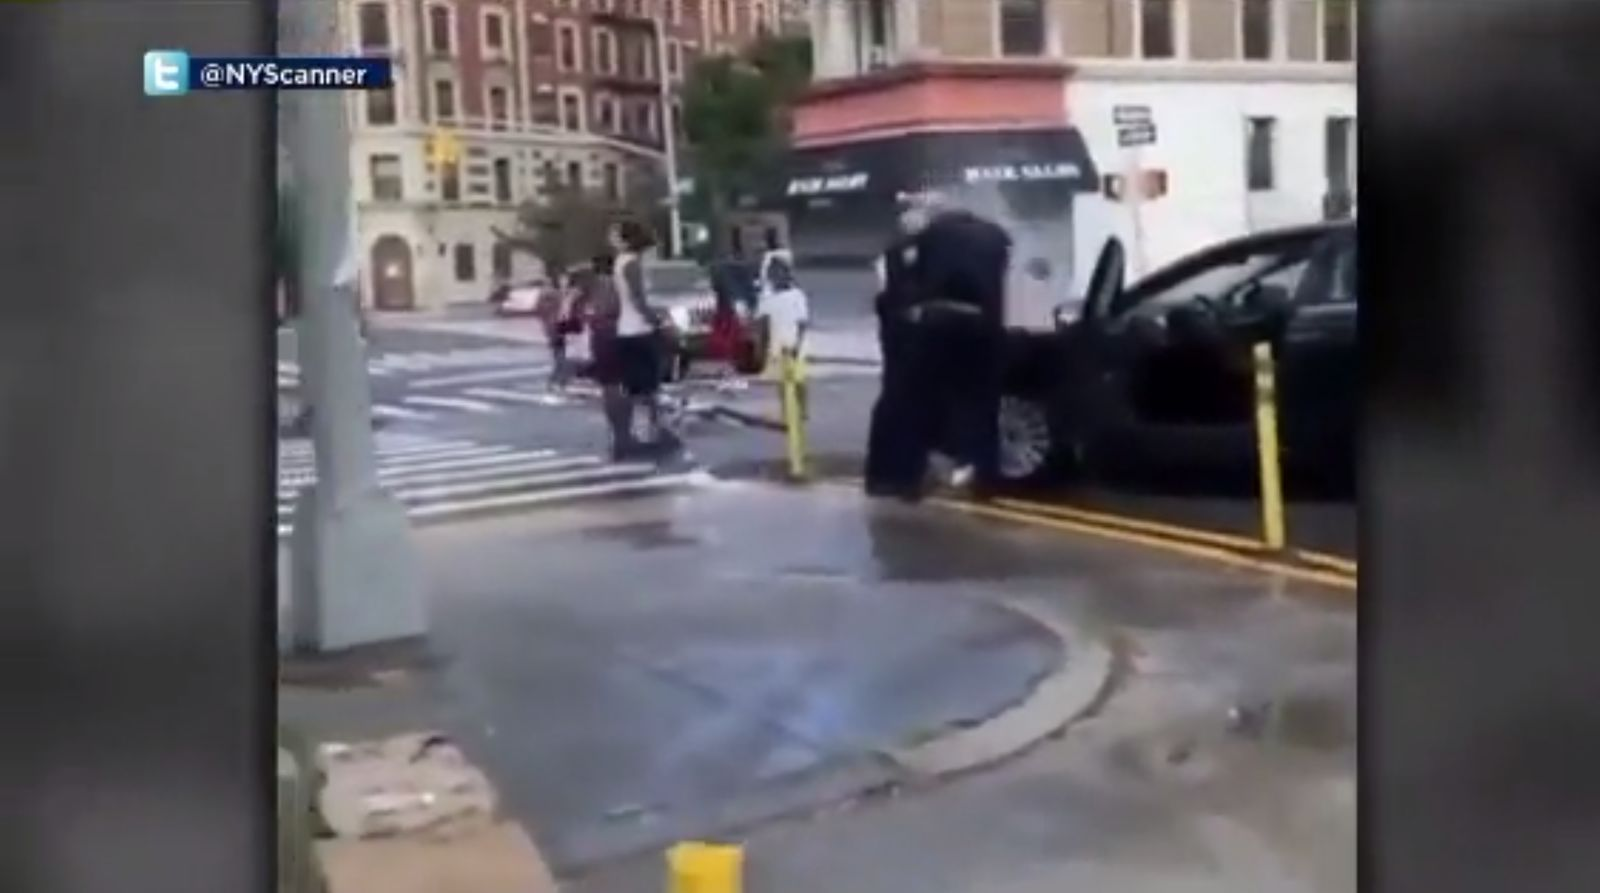 This screenshot of a video uploaded by Twitter used @NYScanner shows police officers in Harlem being doused with water as they make an arrest. (Image: WCBS via CNN Newsource)